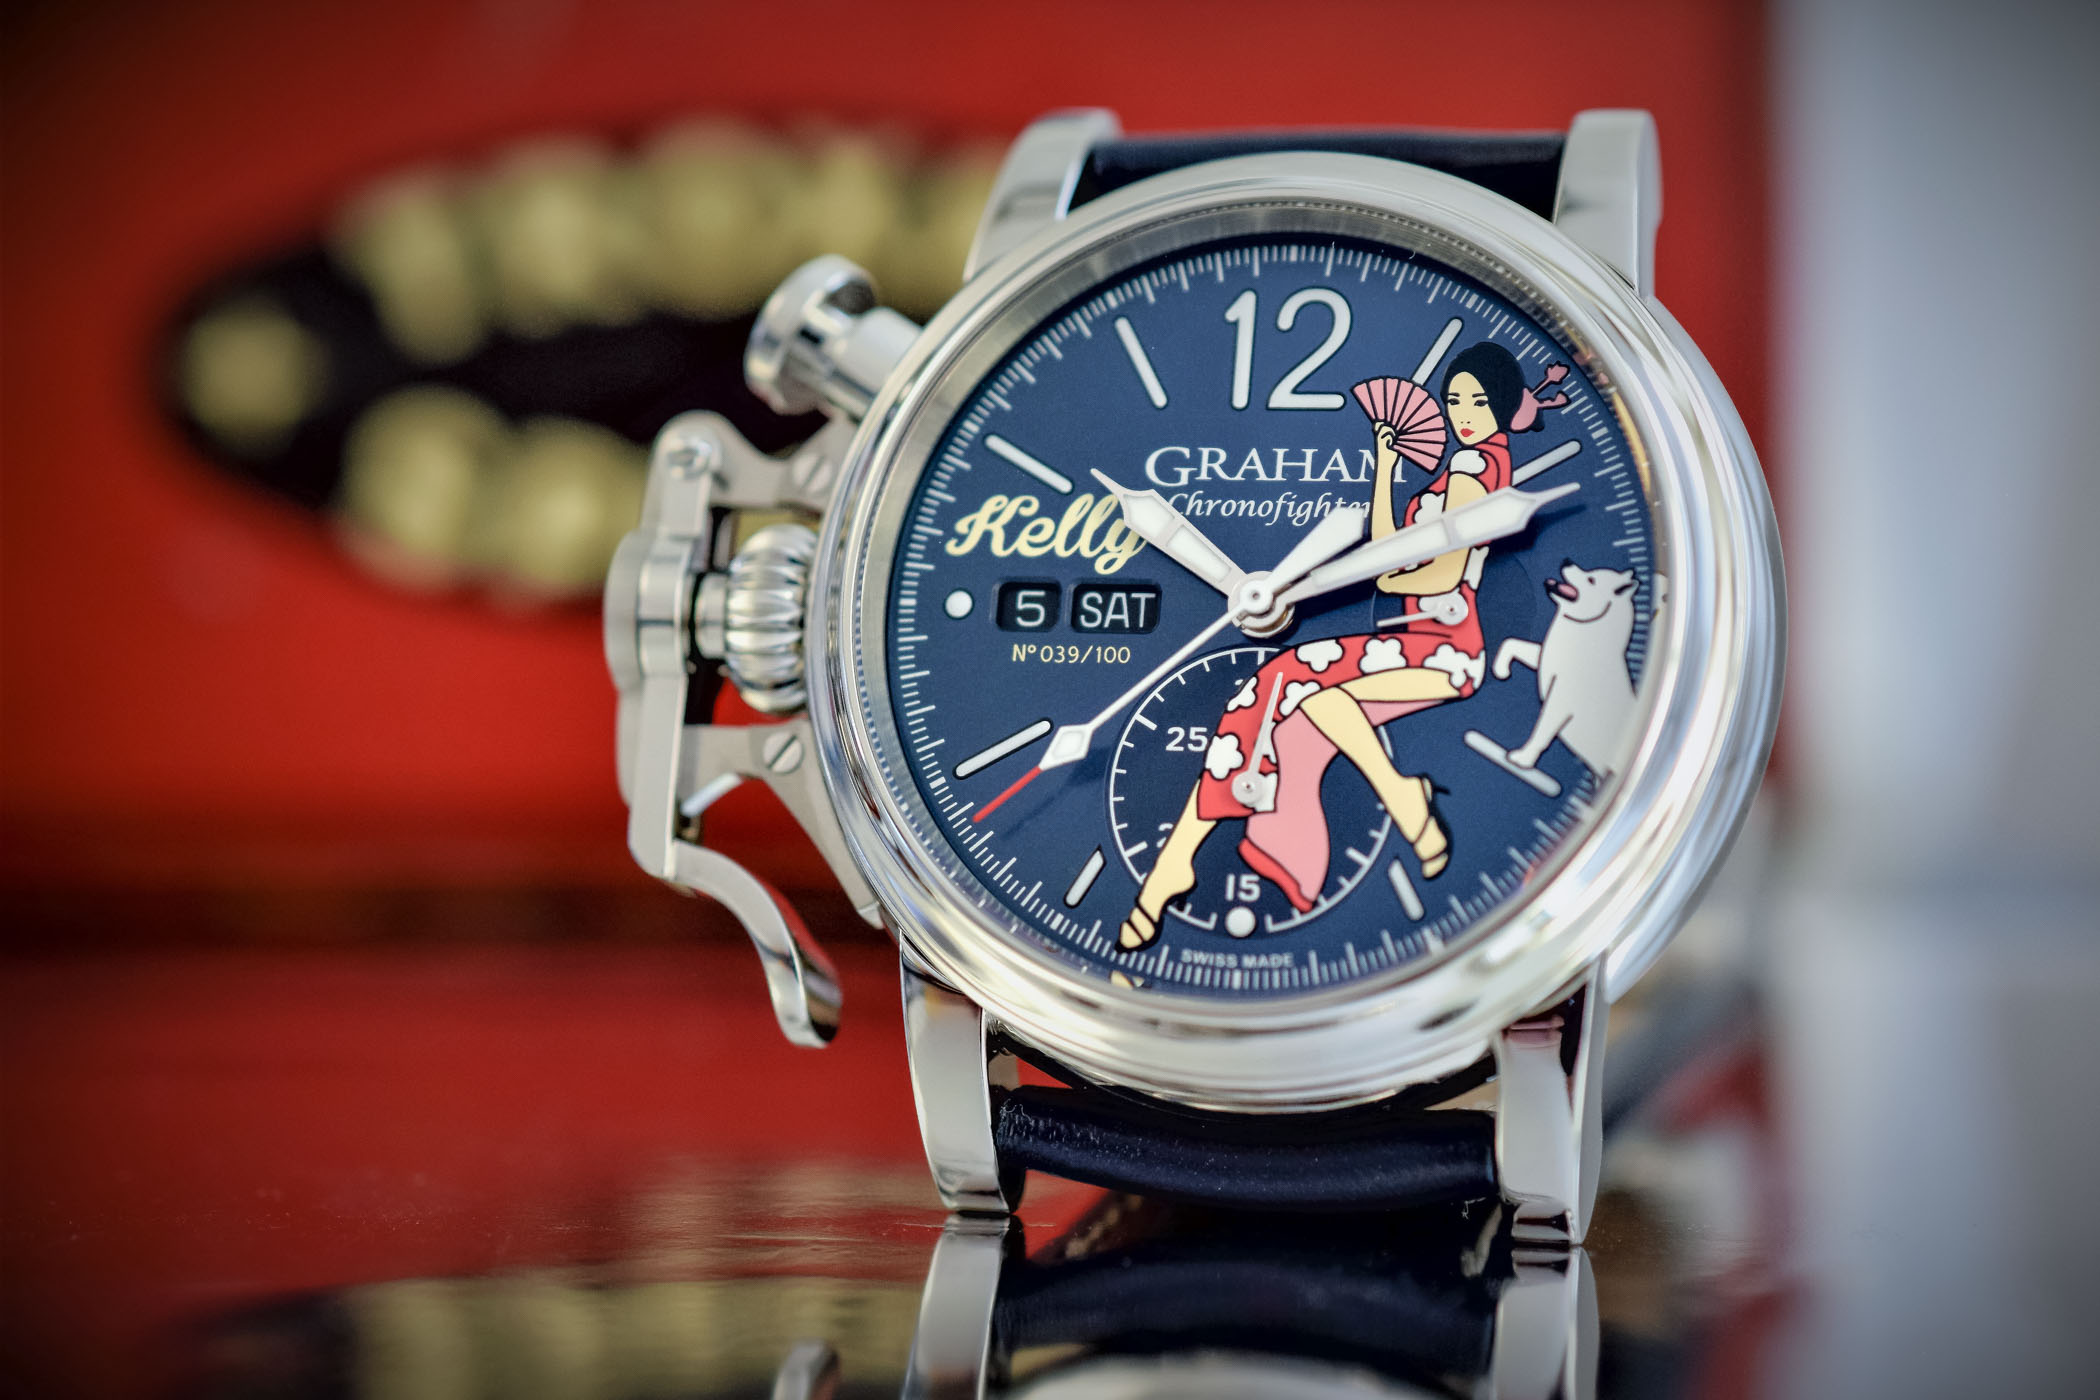 lg watches graham iii mark watchtime chronofighter s overlord oversize usa